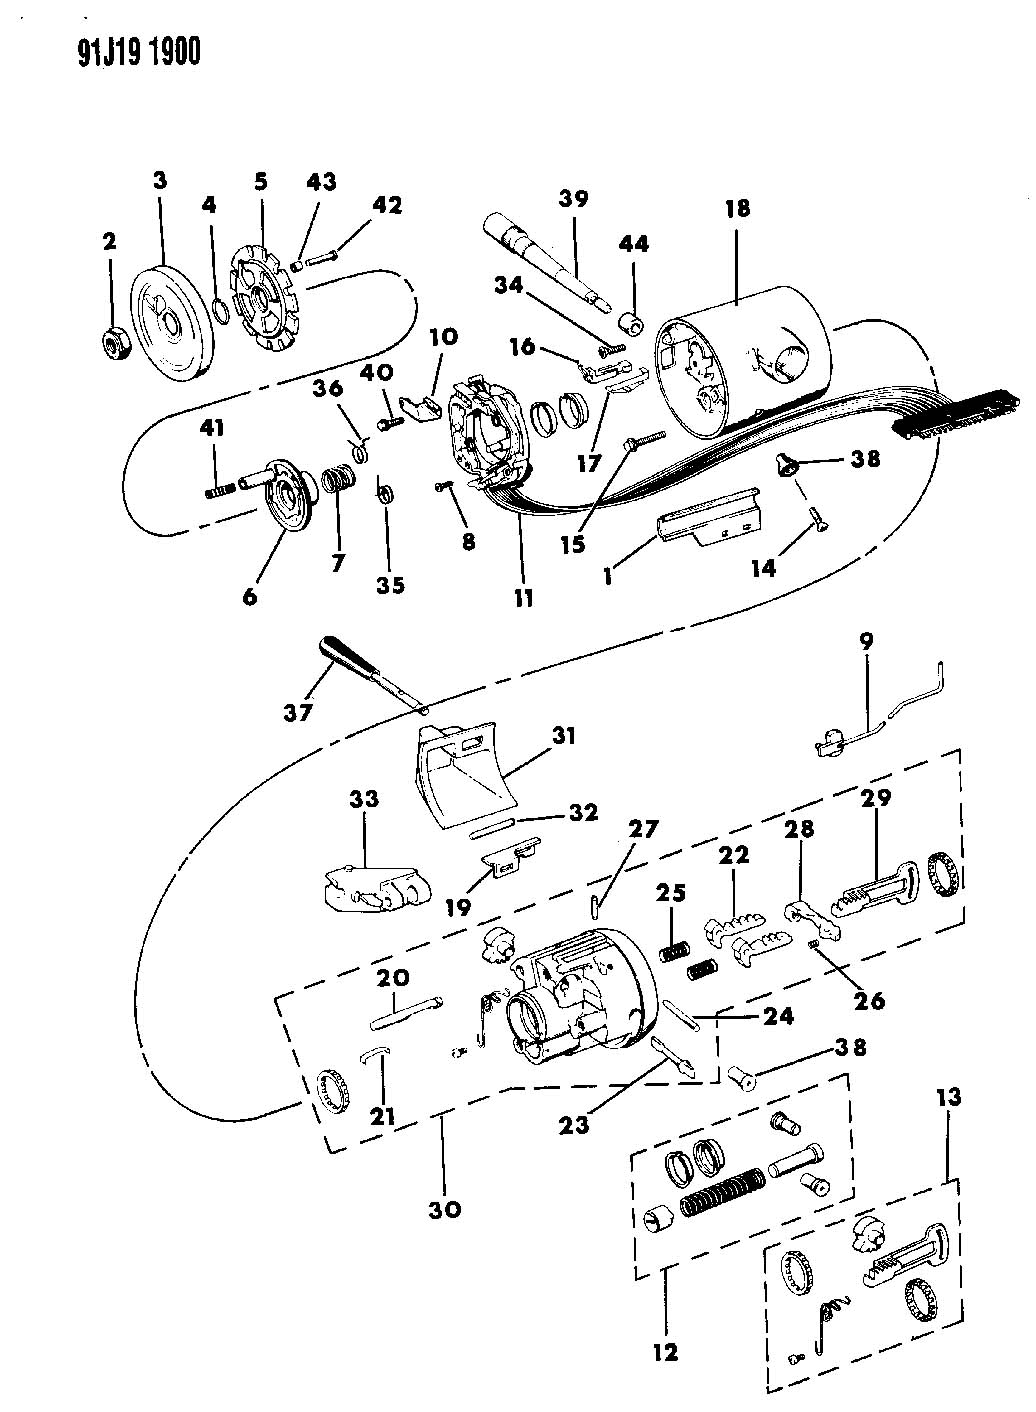 jeep wrangler steering column diagram 2001 ford taurus parts comanche imageresizertool com